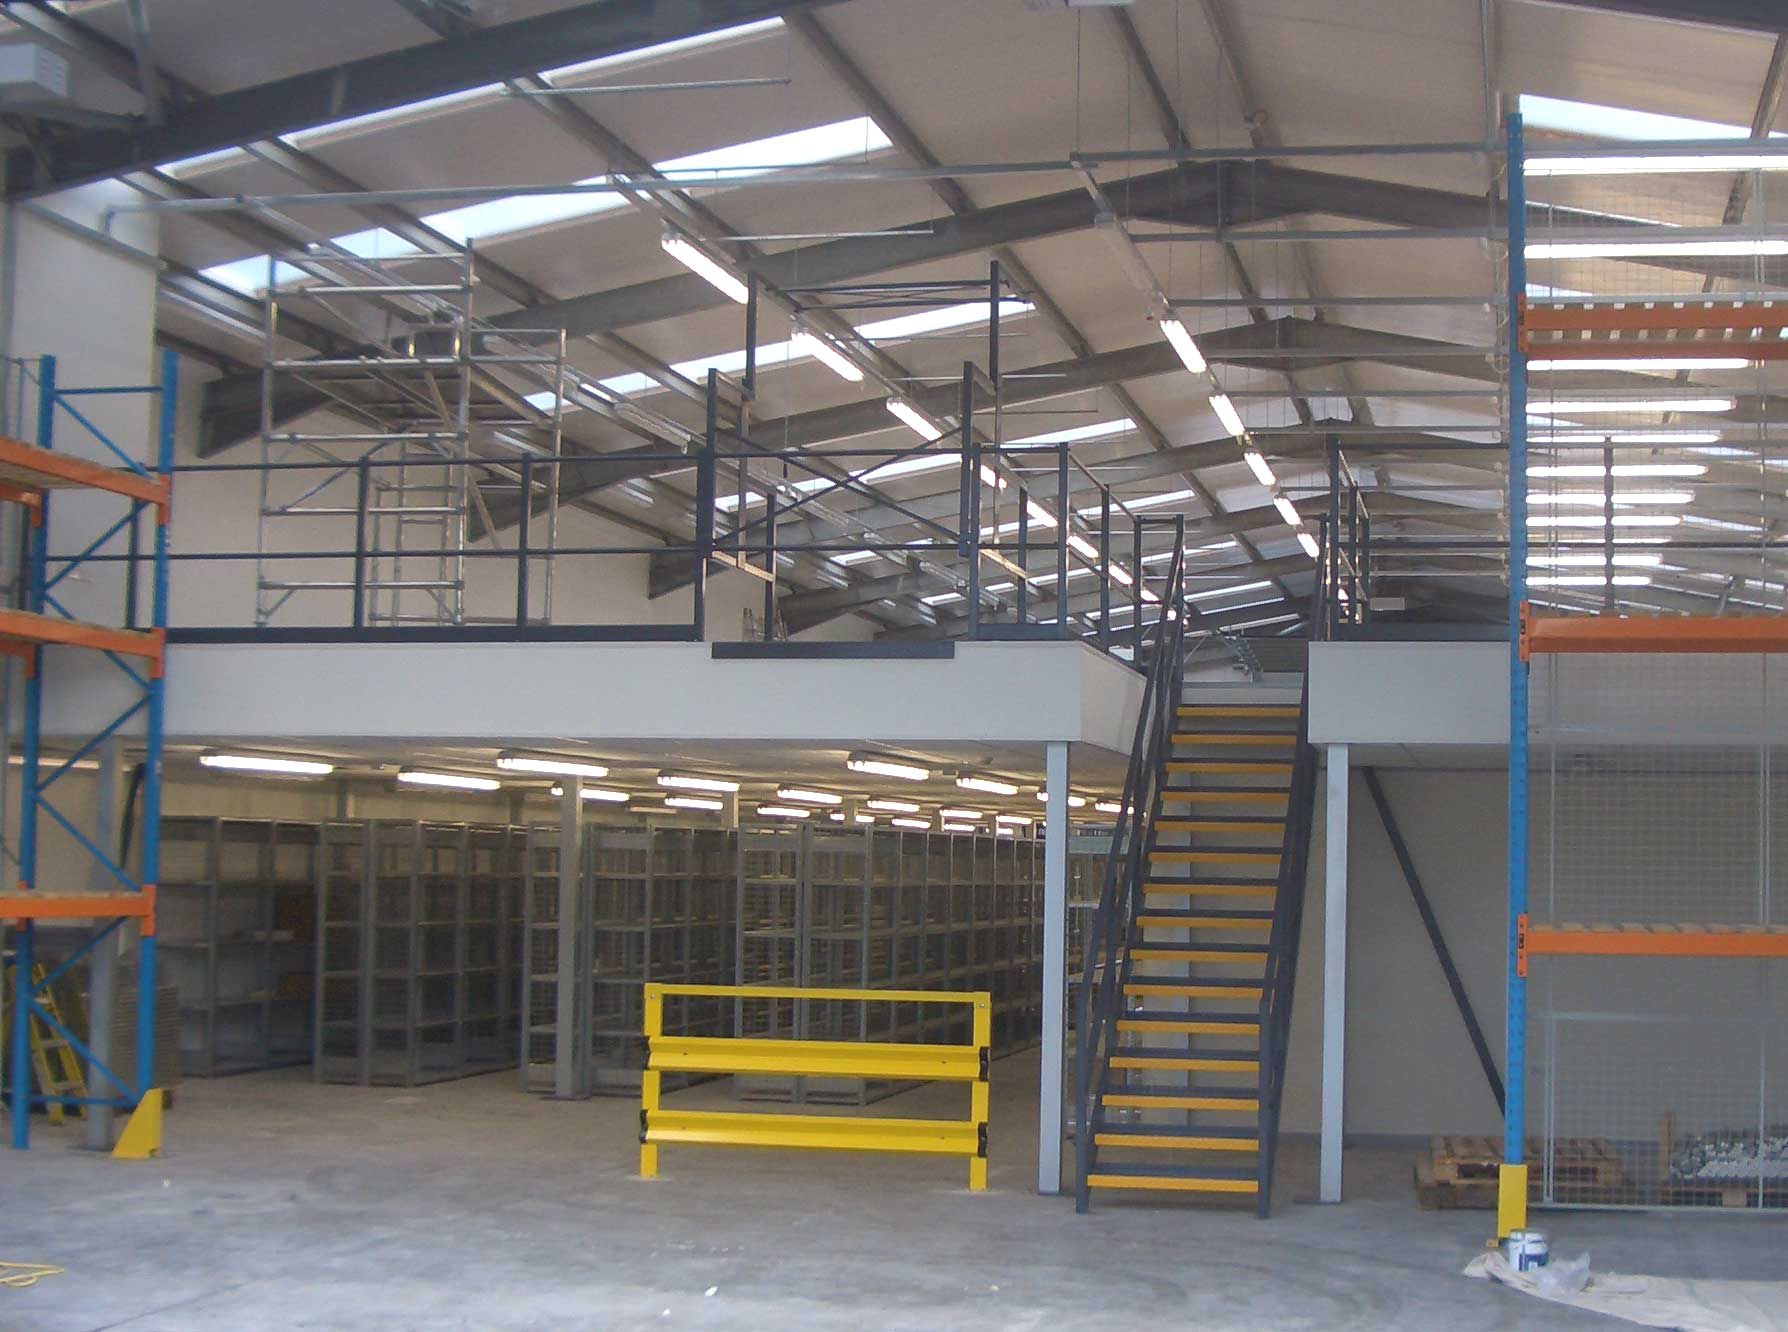 Mezzanine Floor Design when it comes to planning a suitable layout for your storage